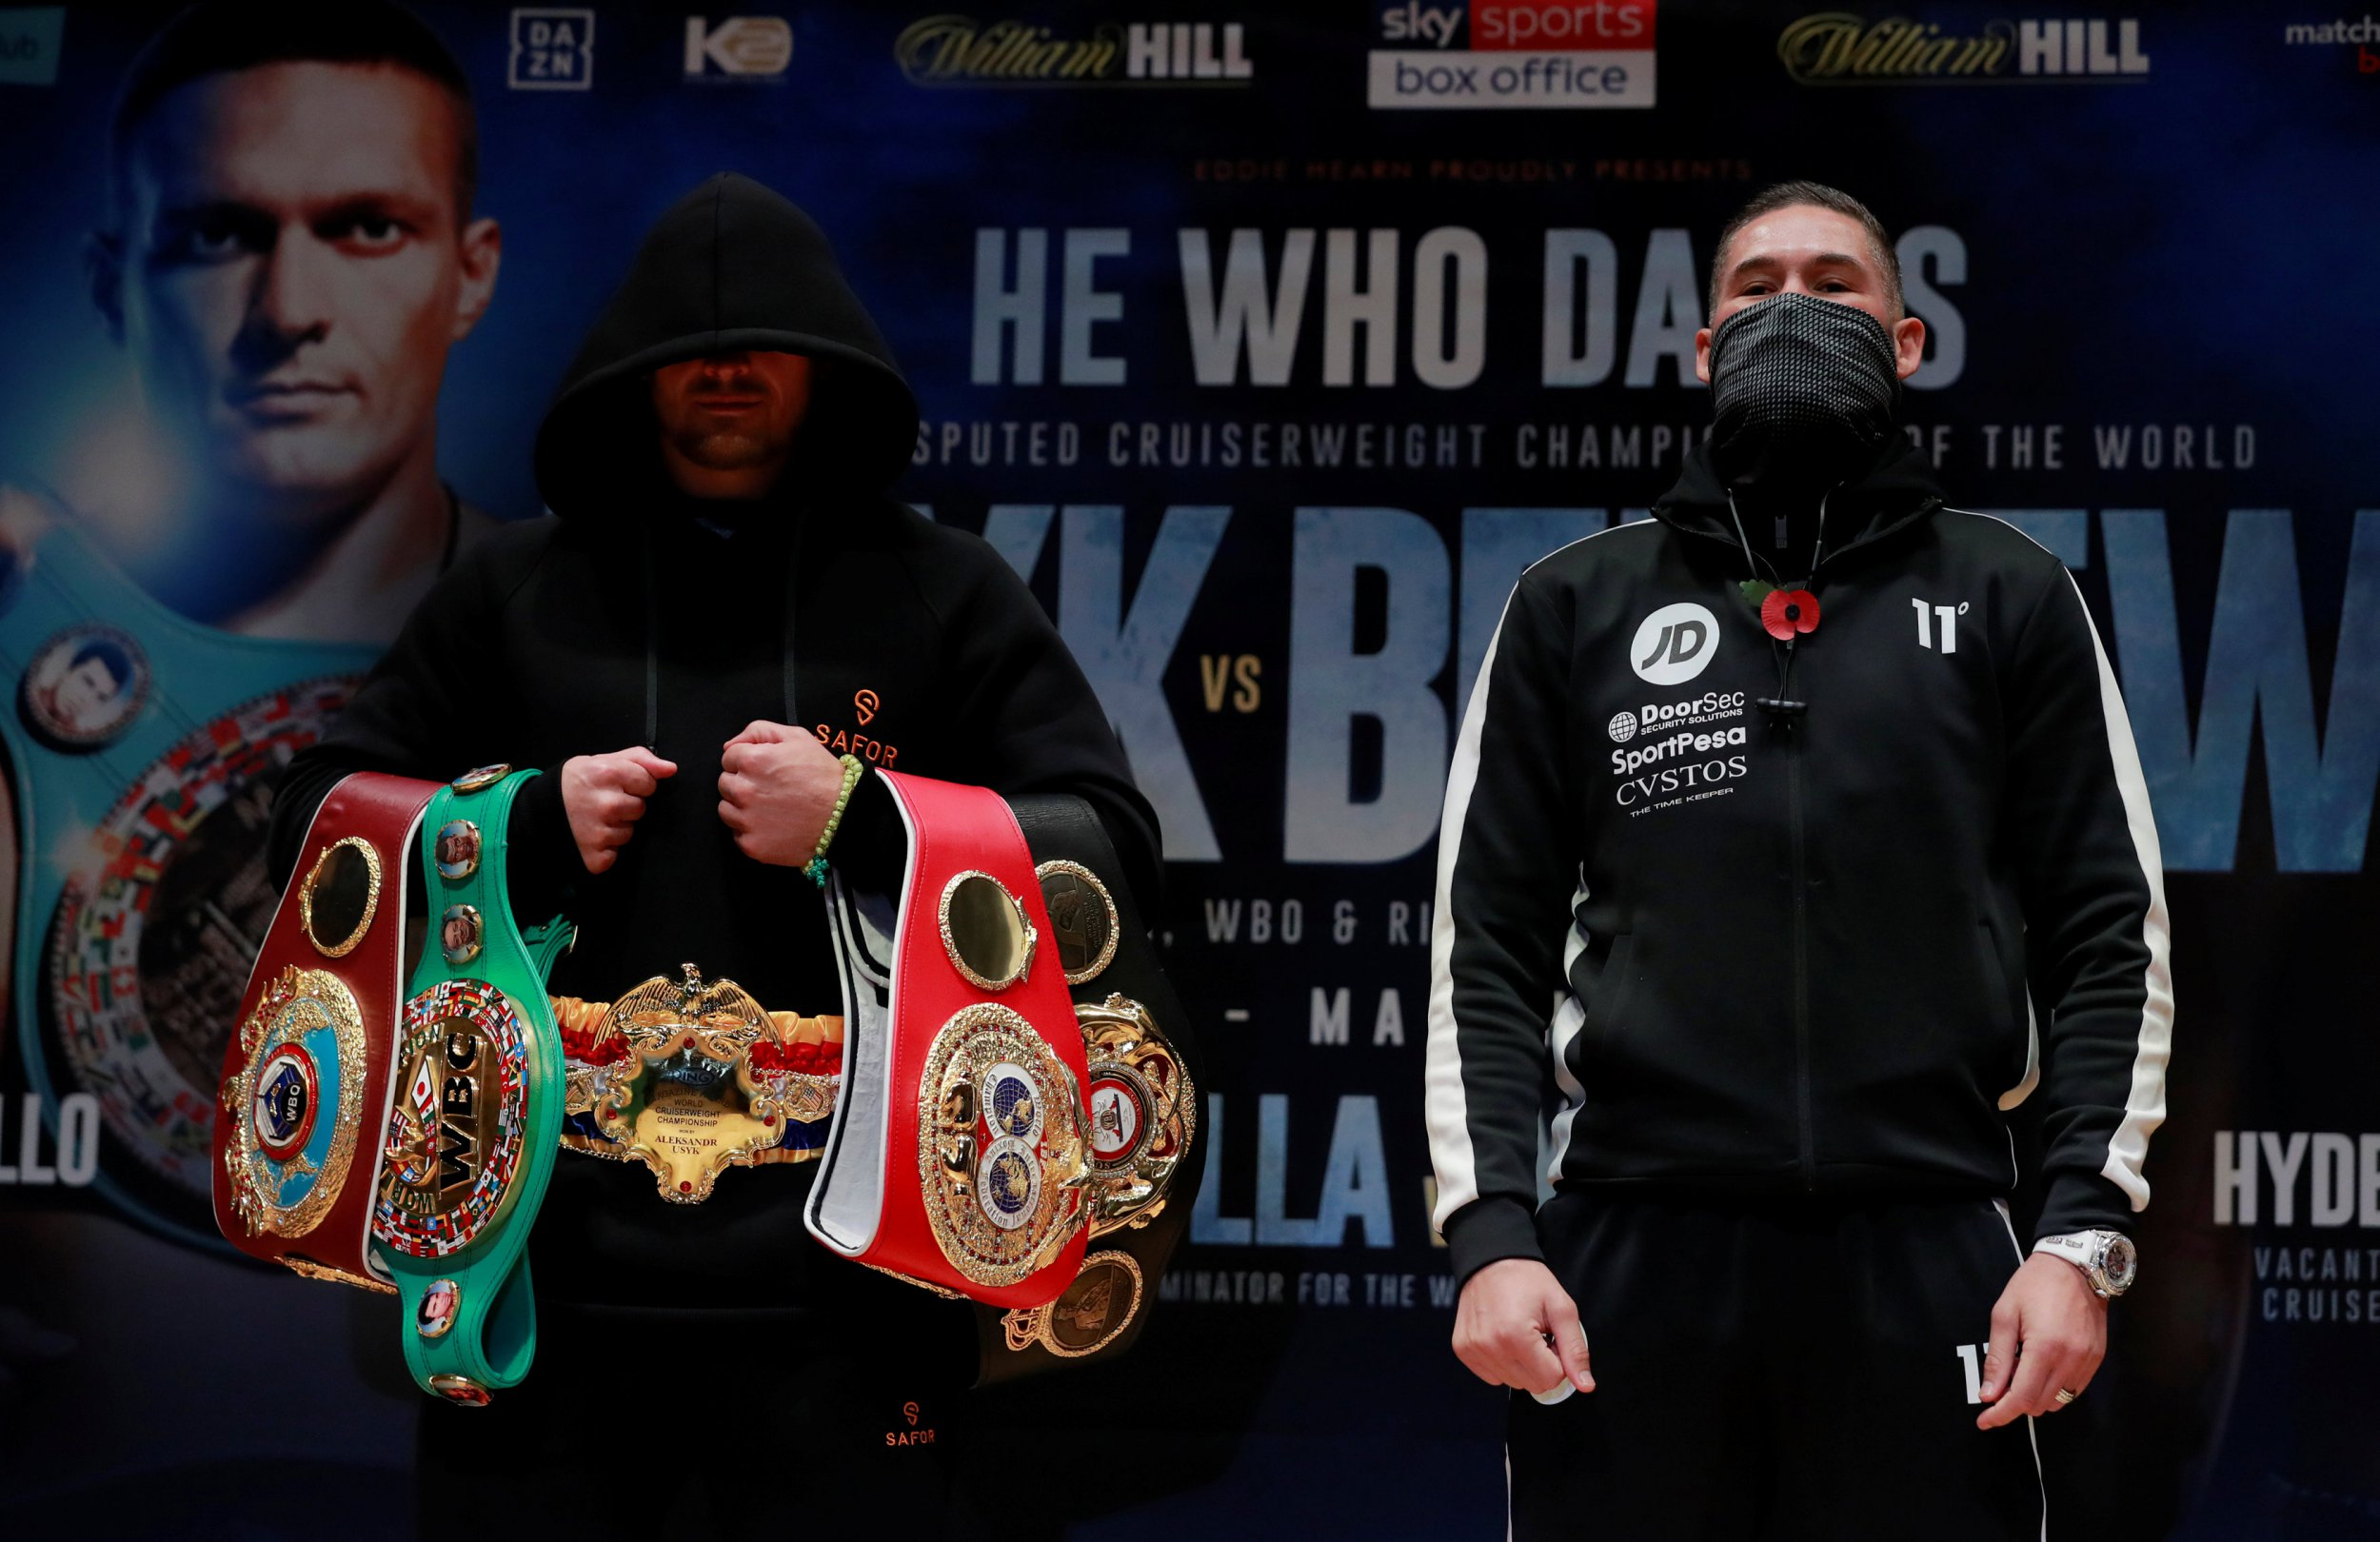 Serial underdog Tony Bellew plots one more giant killing against Oleksandr Usyk